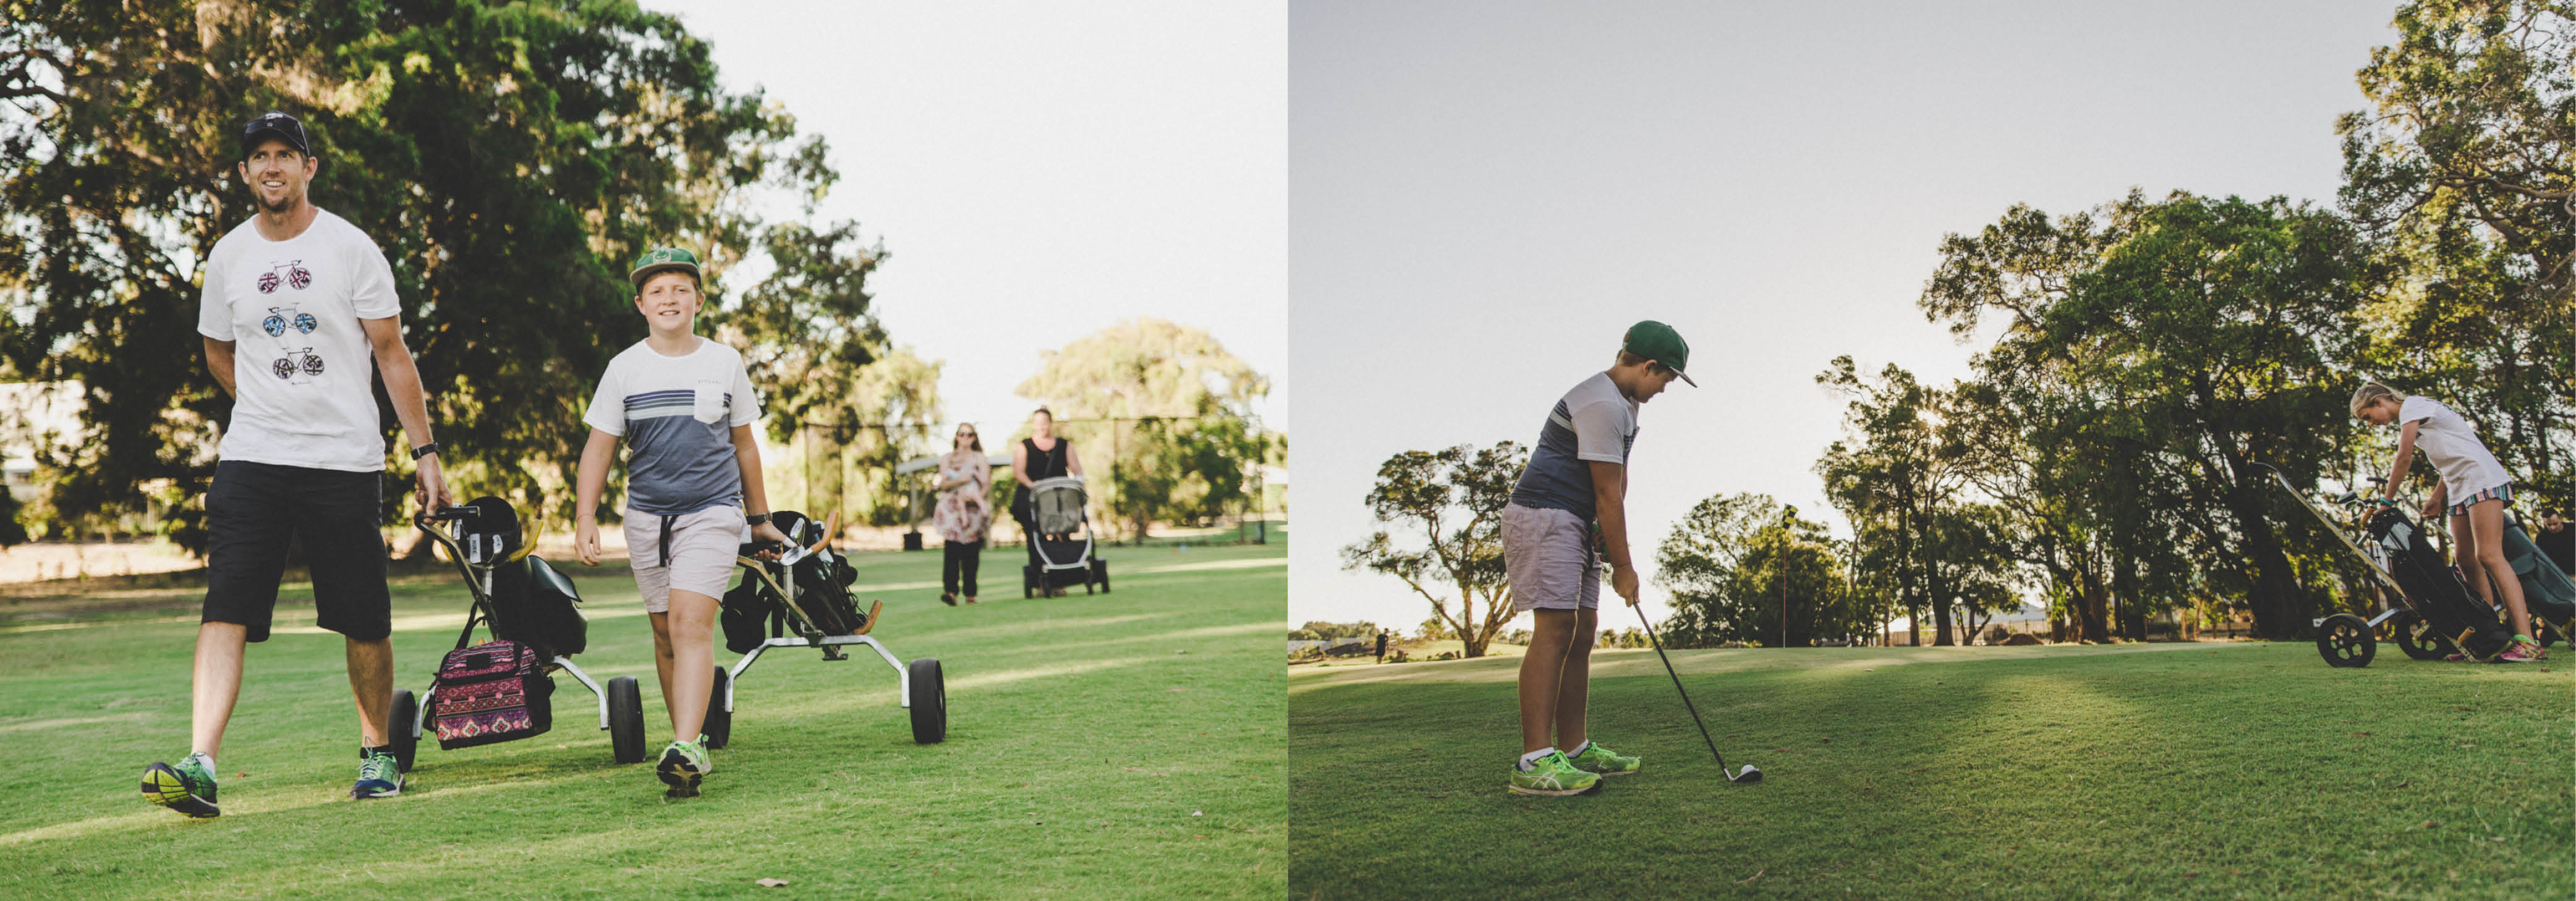 Family Holiday Busselton | The Par 3 at Old Broadwater Farm. Family activities Busselton, things to do in Margaret River. Cafe Busselton.